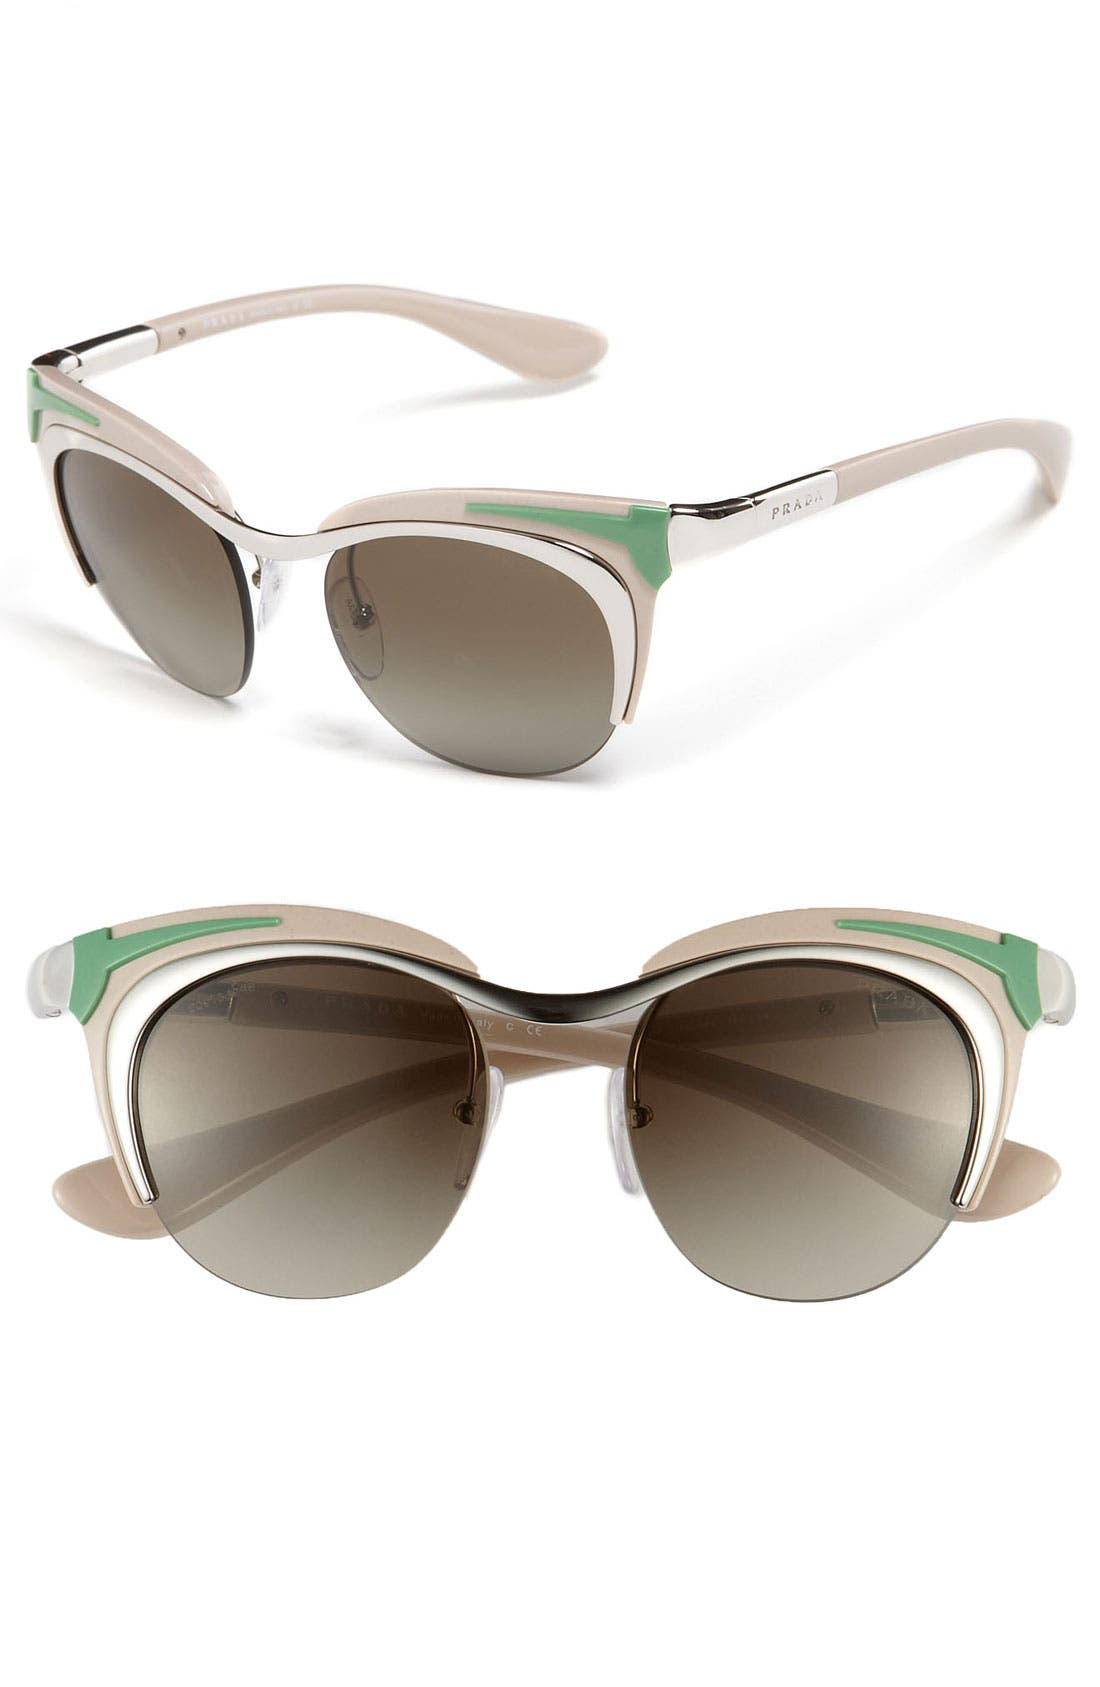 Main Image - Prada Retro Sunglasses